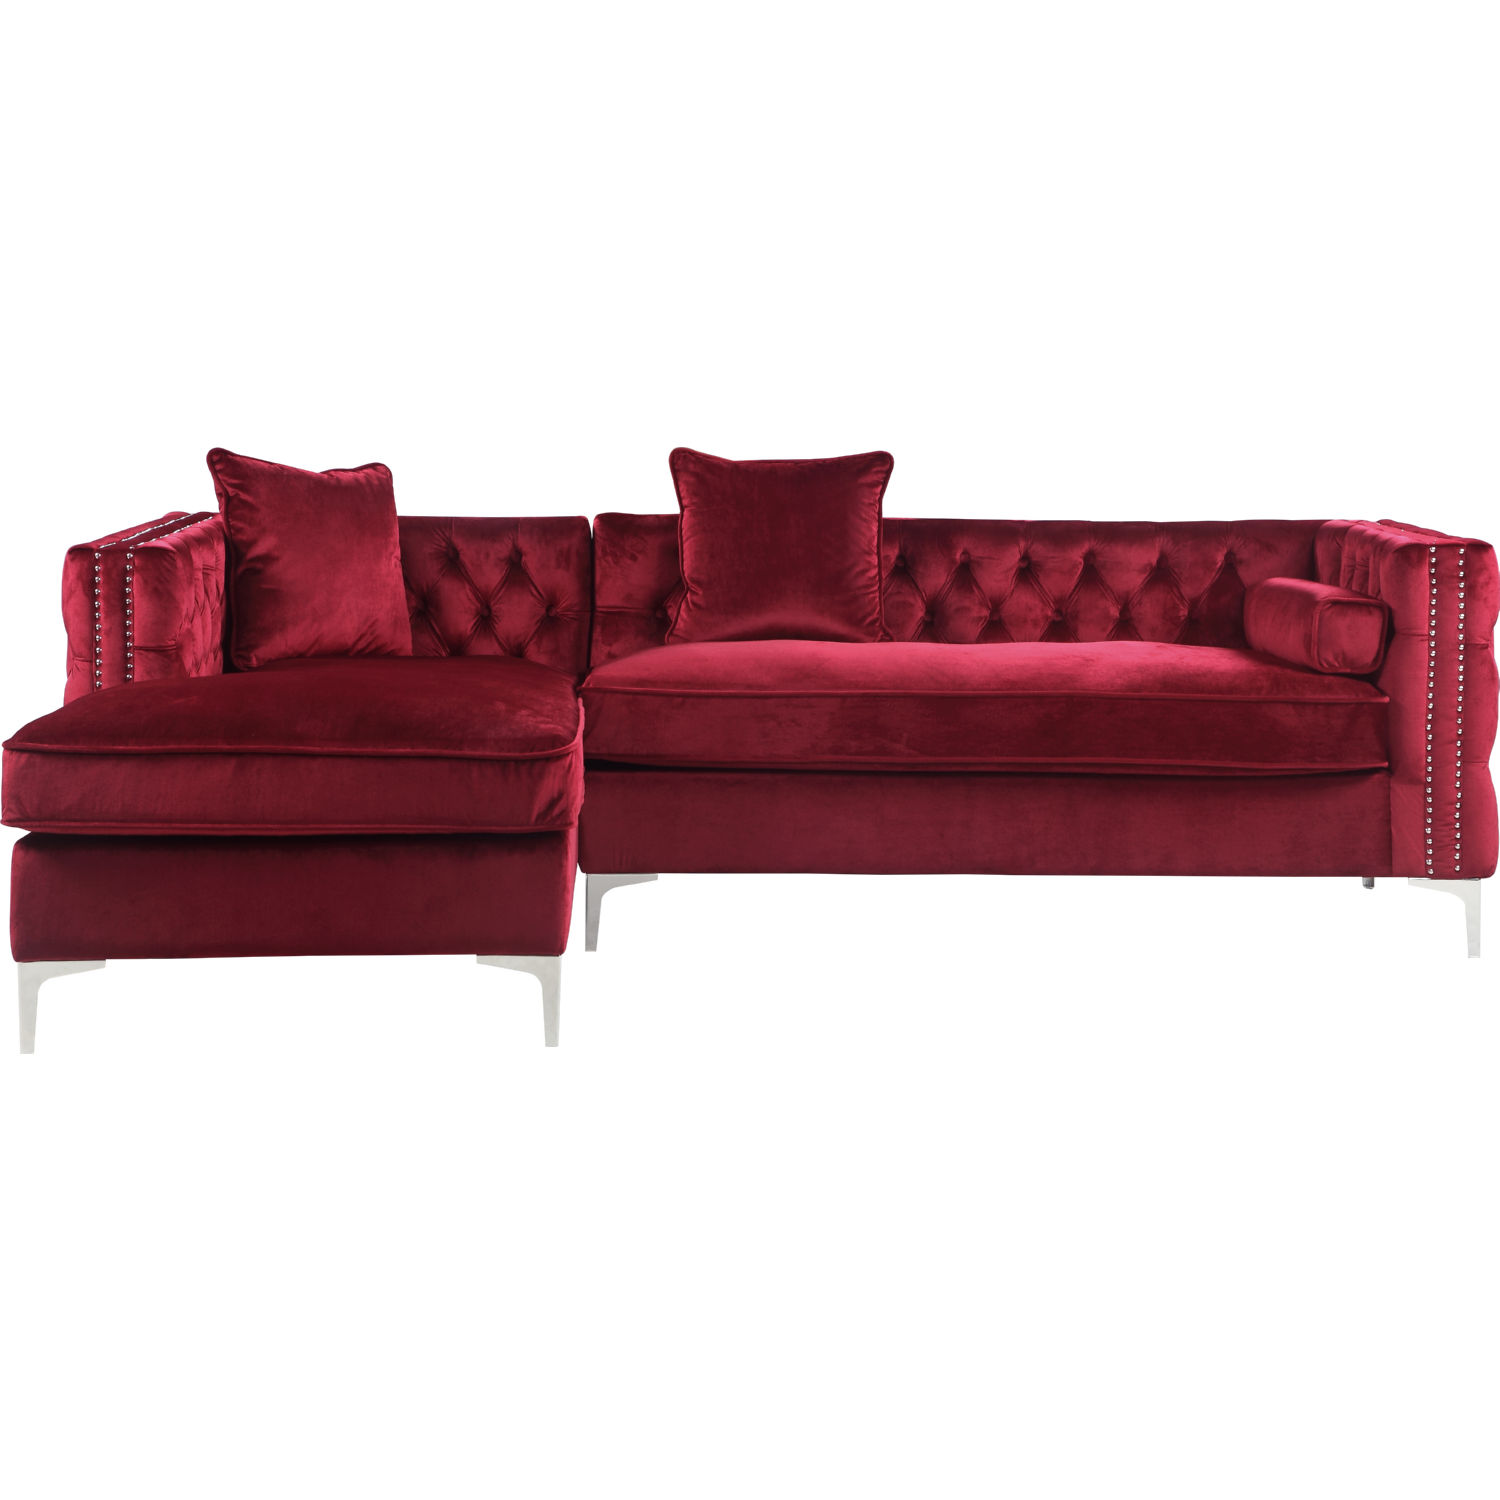 Da Vinci Sectional Sofa w/ Left Chaise in Tufted Red Velvet by Chic Home